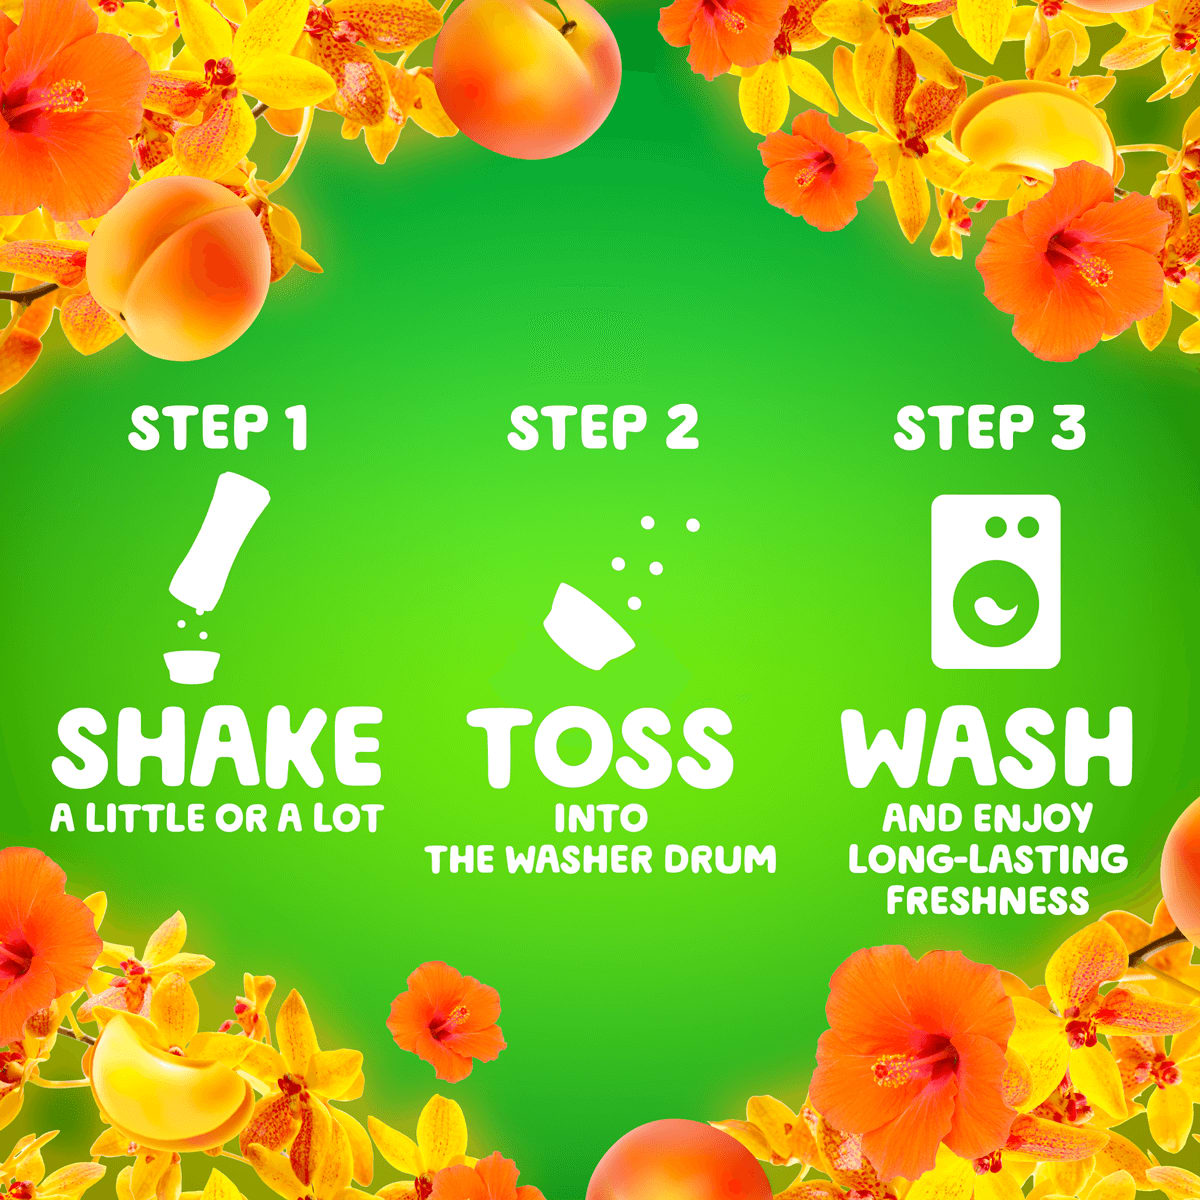 Using directions for the Gain Island Fresh Firework In-Wash Scent Booster: step 1, shake, step 2, toss into the washer drum, step 3, wash the clothes